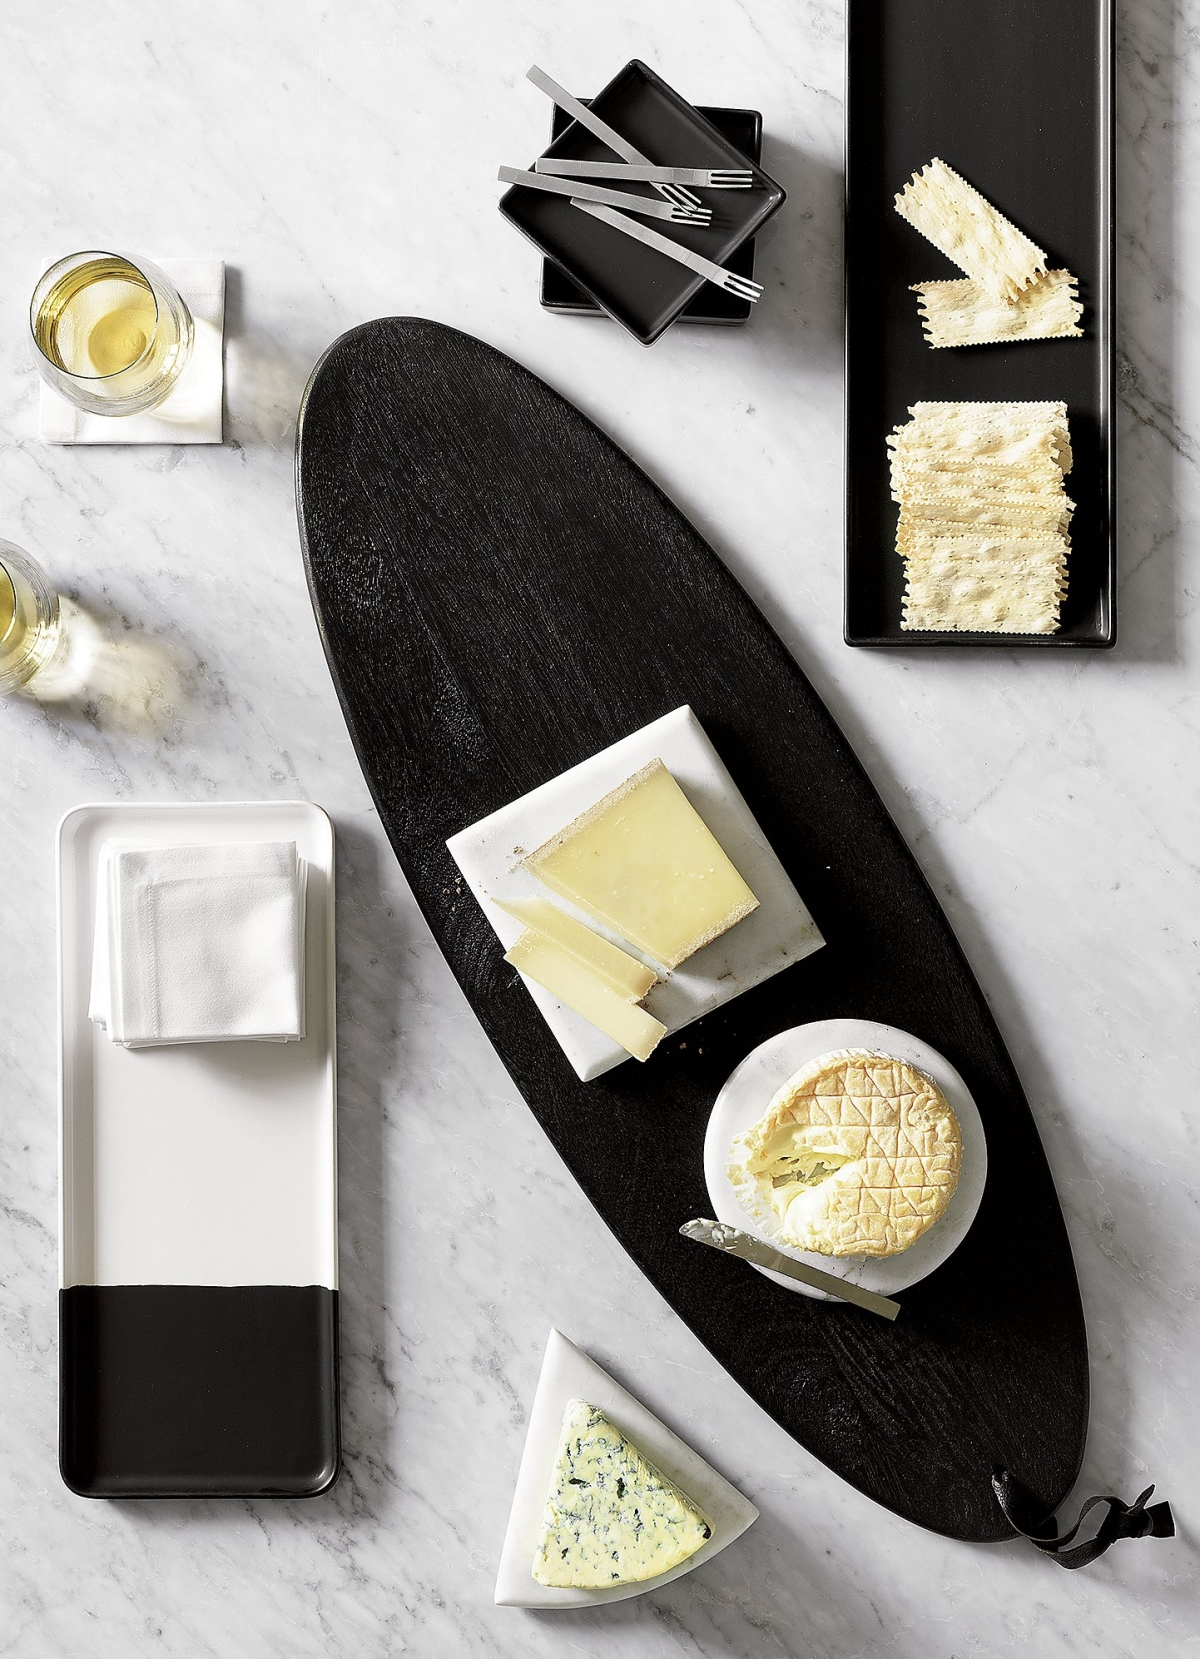 Black and white serveware from CB2